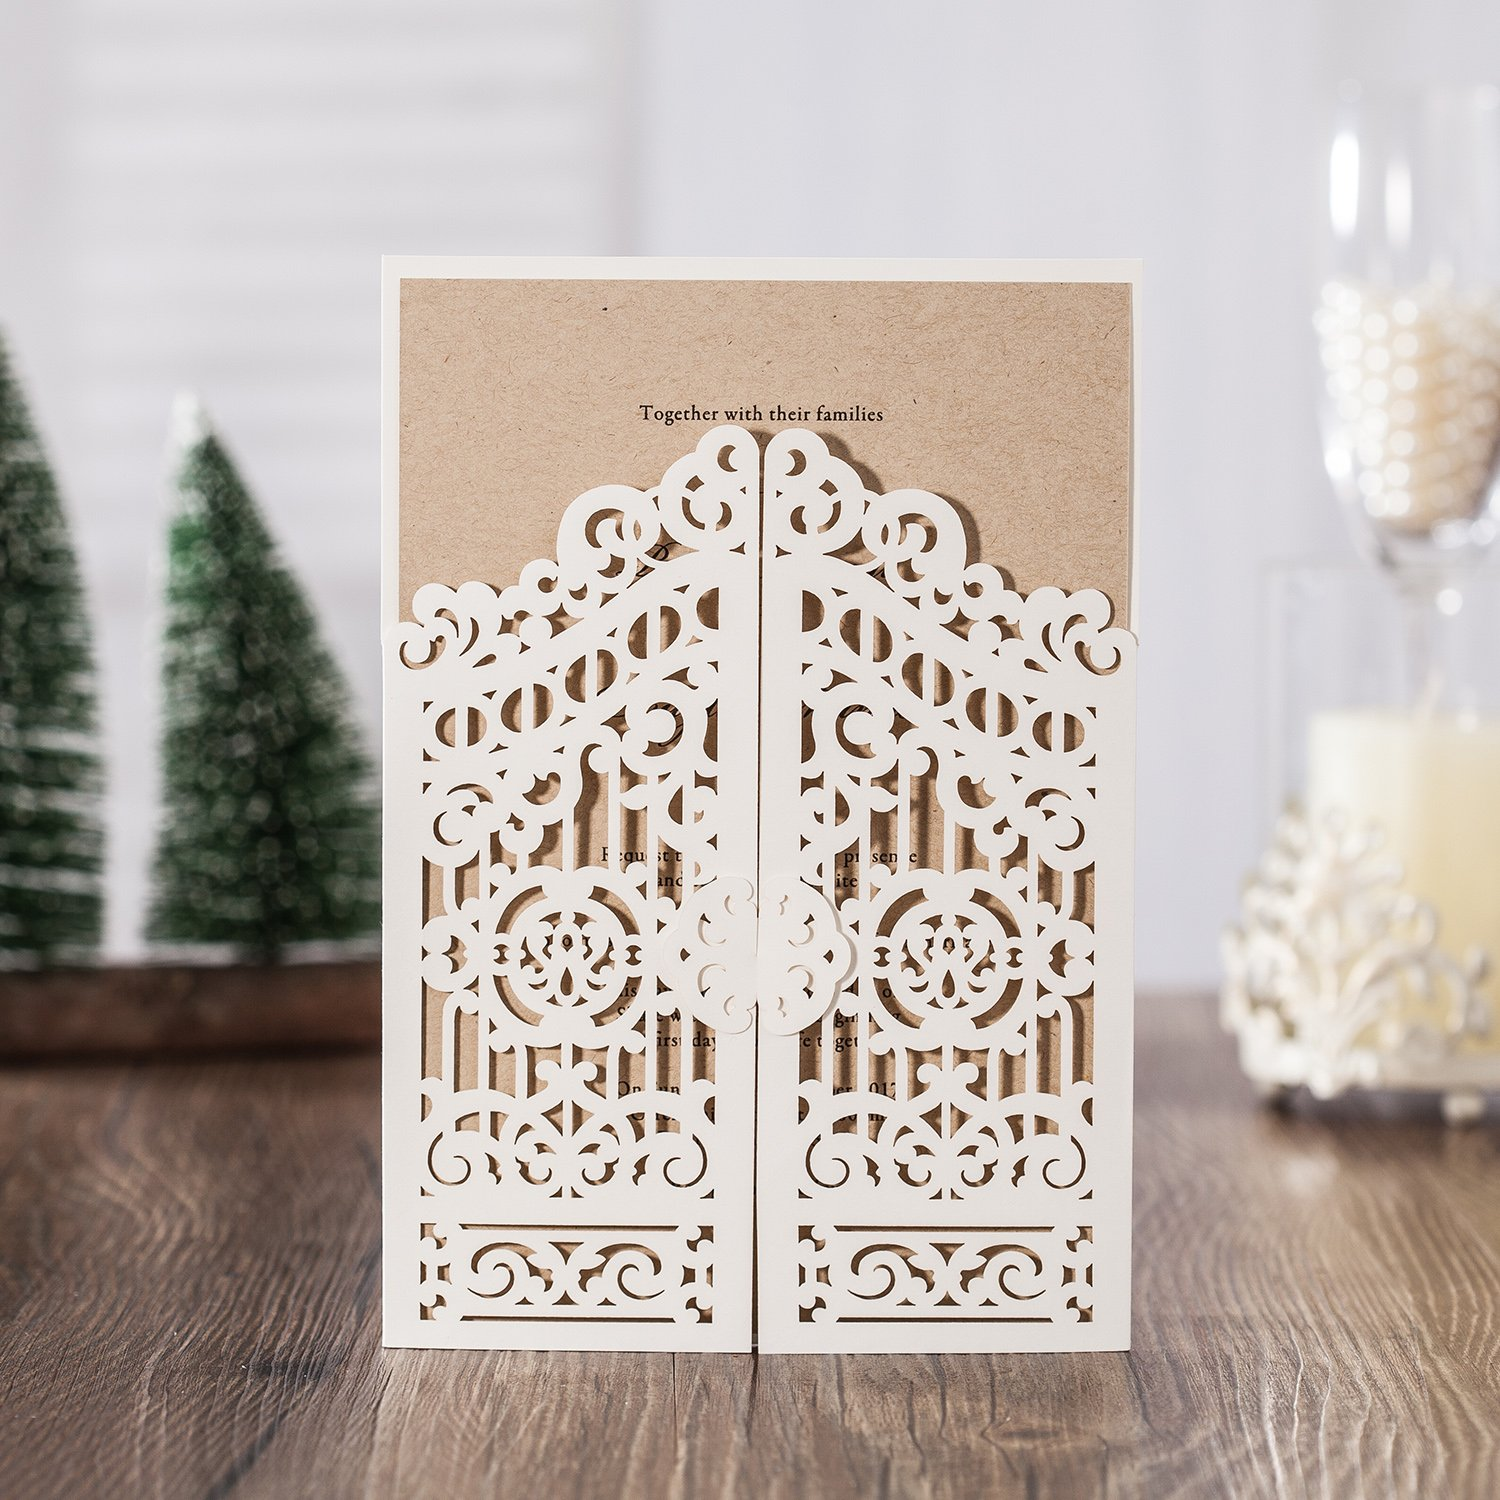 Wishmade Wedding Invitation Cards 20 Sets White Gate Wedding Invitation Laser Cut Greeting Card with one Page Inner Sheet,Envelope